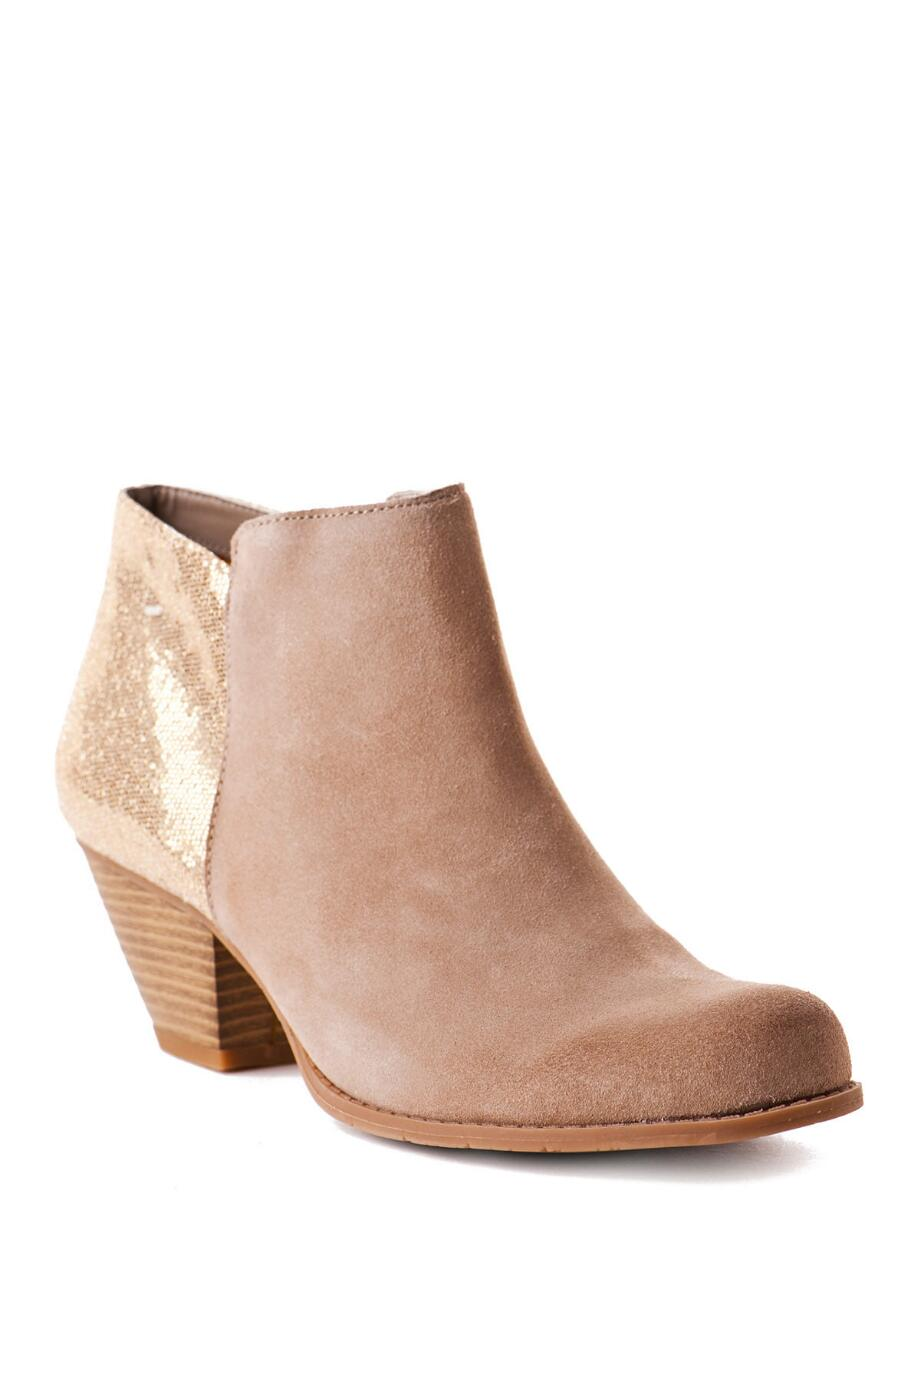 BC Footwear Shoes, Eager Beaver Metallic Bootie